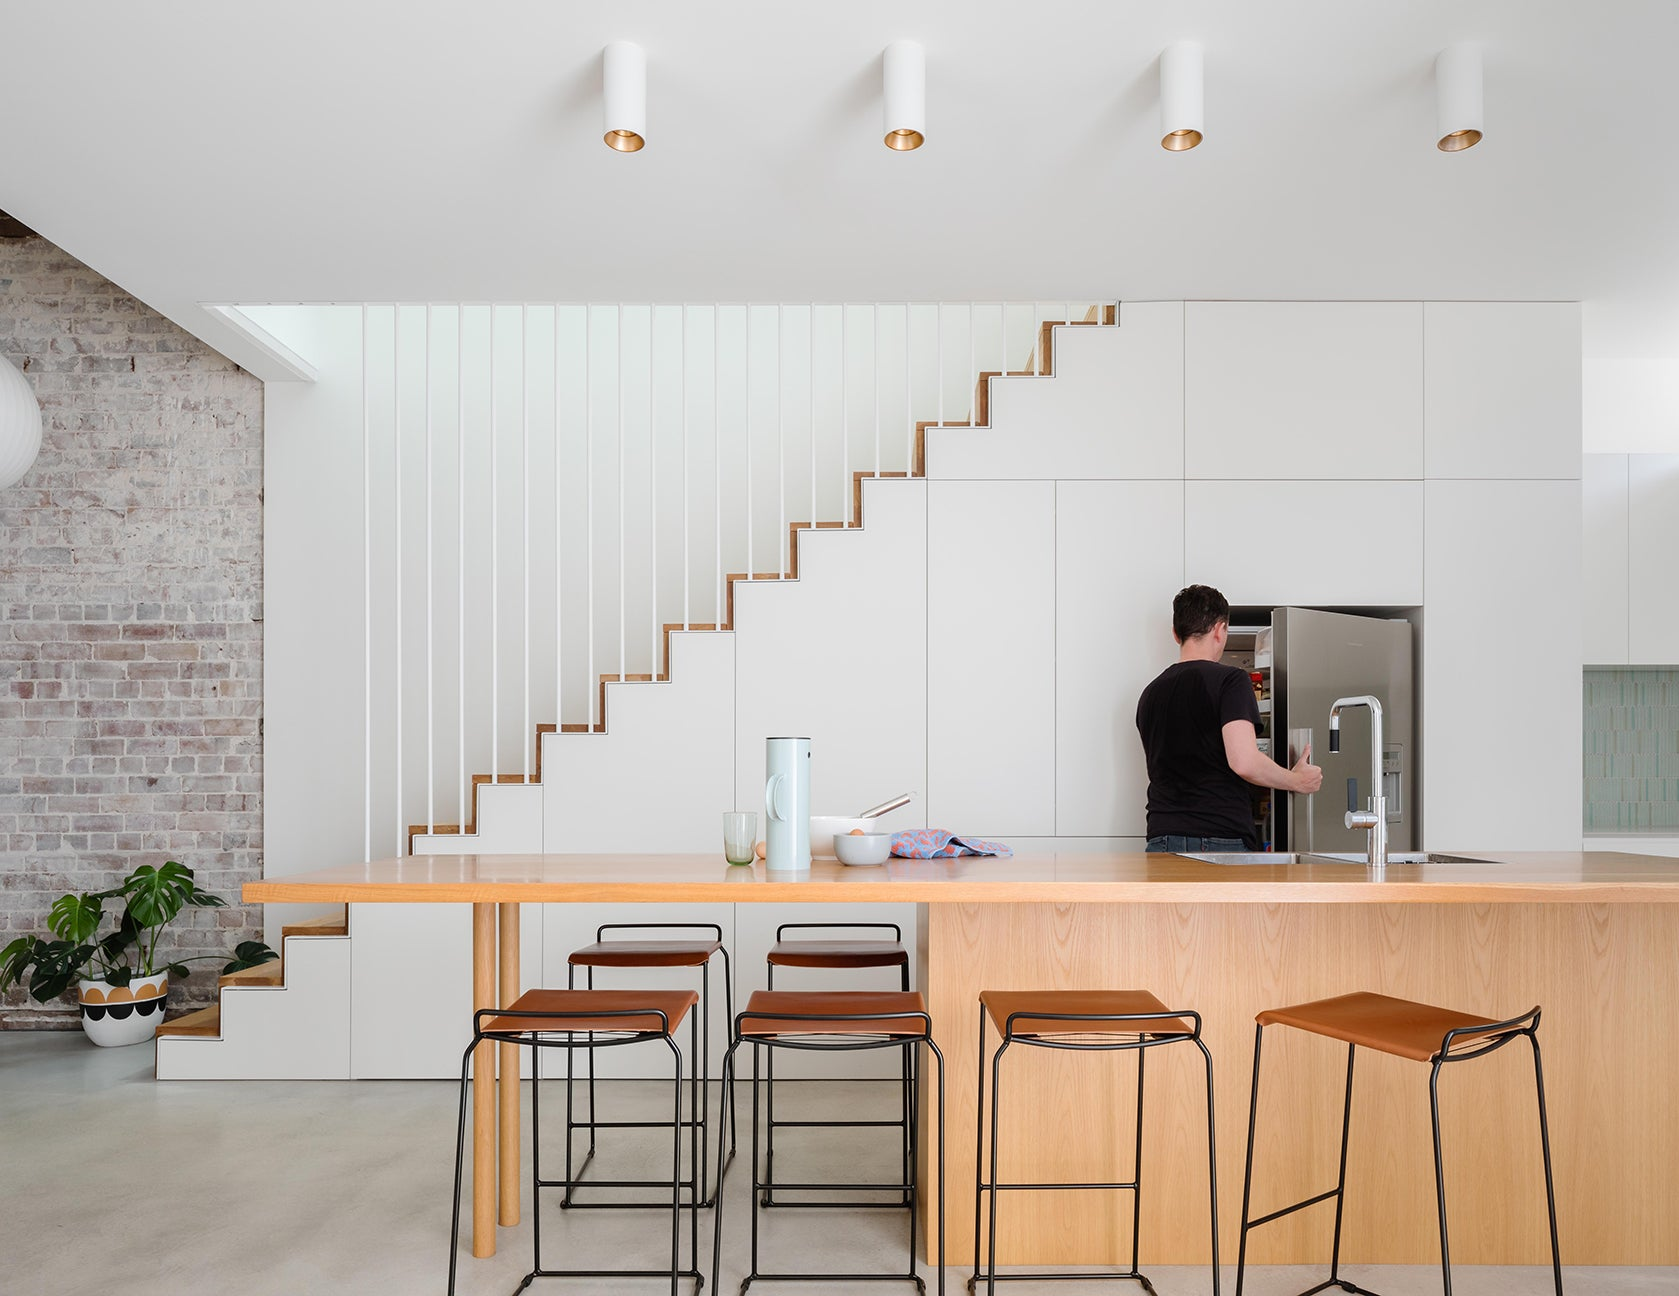 white kitchen cabinetry beneath steel staircase